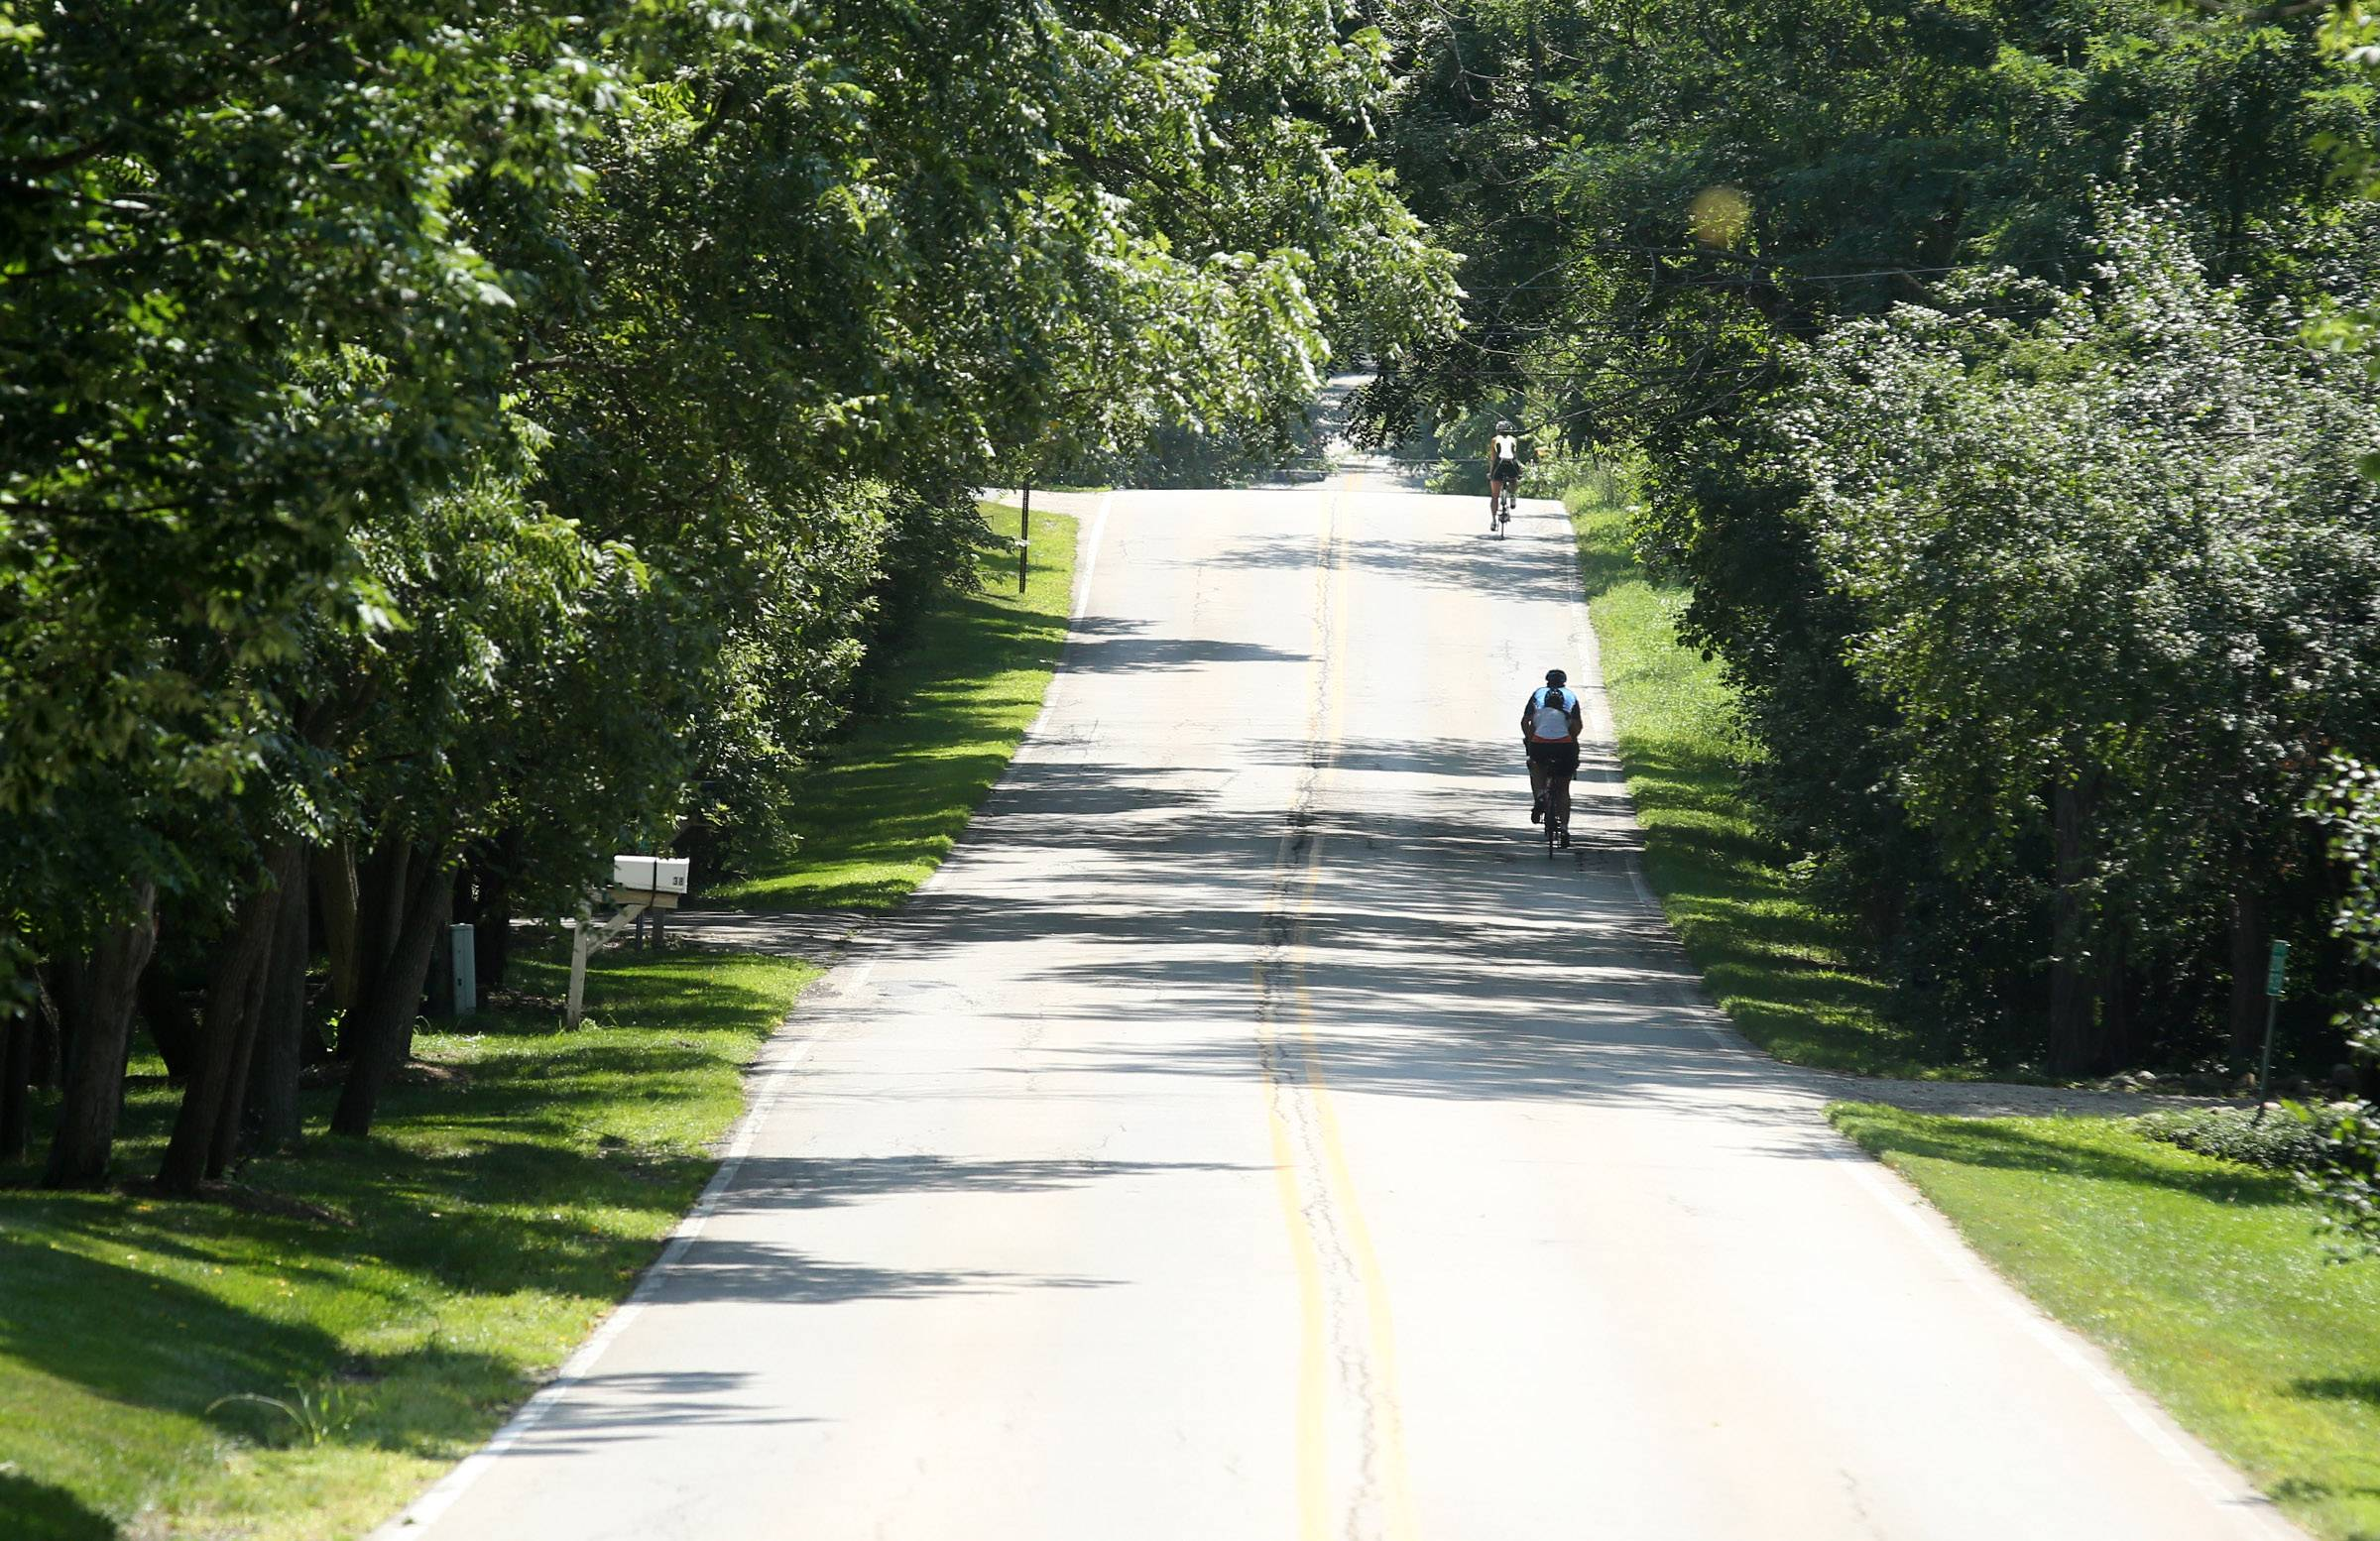 Barrington Hills' quiet, scenic roadways are popular among the town's residents and cyclists passing through, sparking confrontations between the two groups.